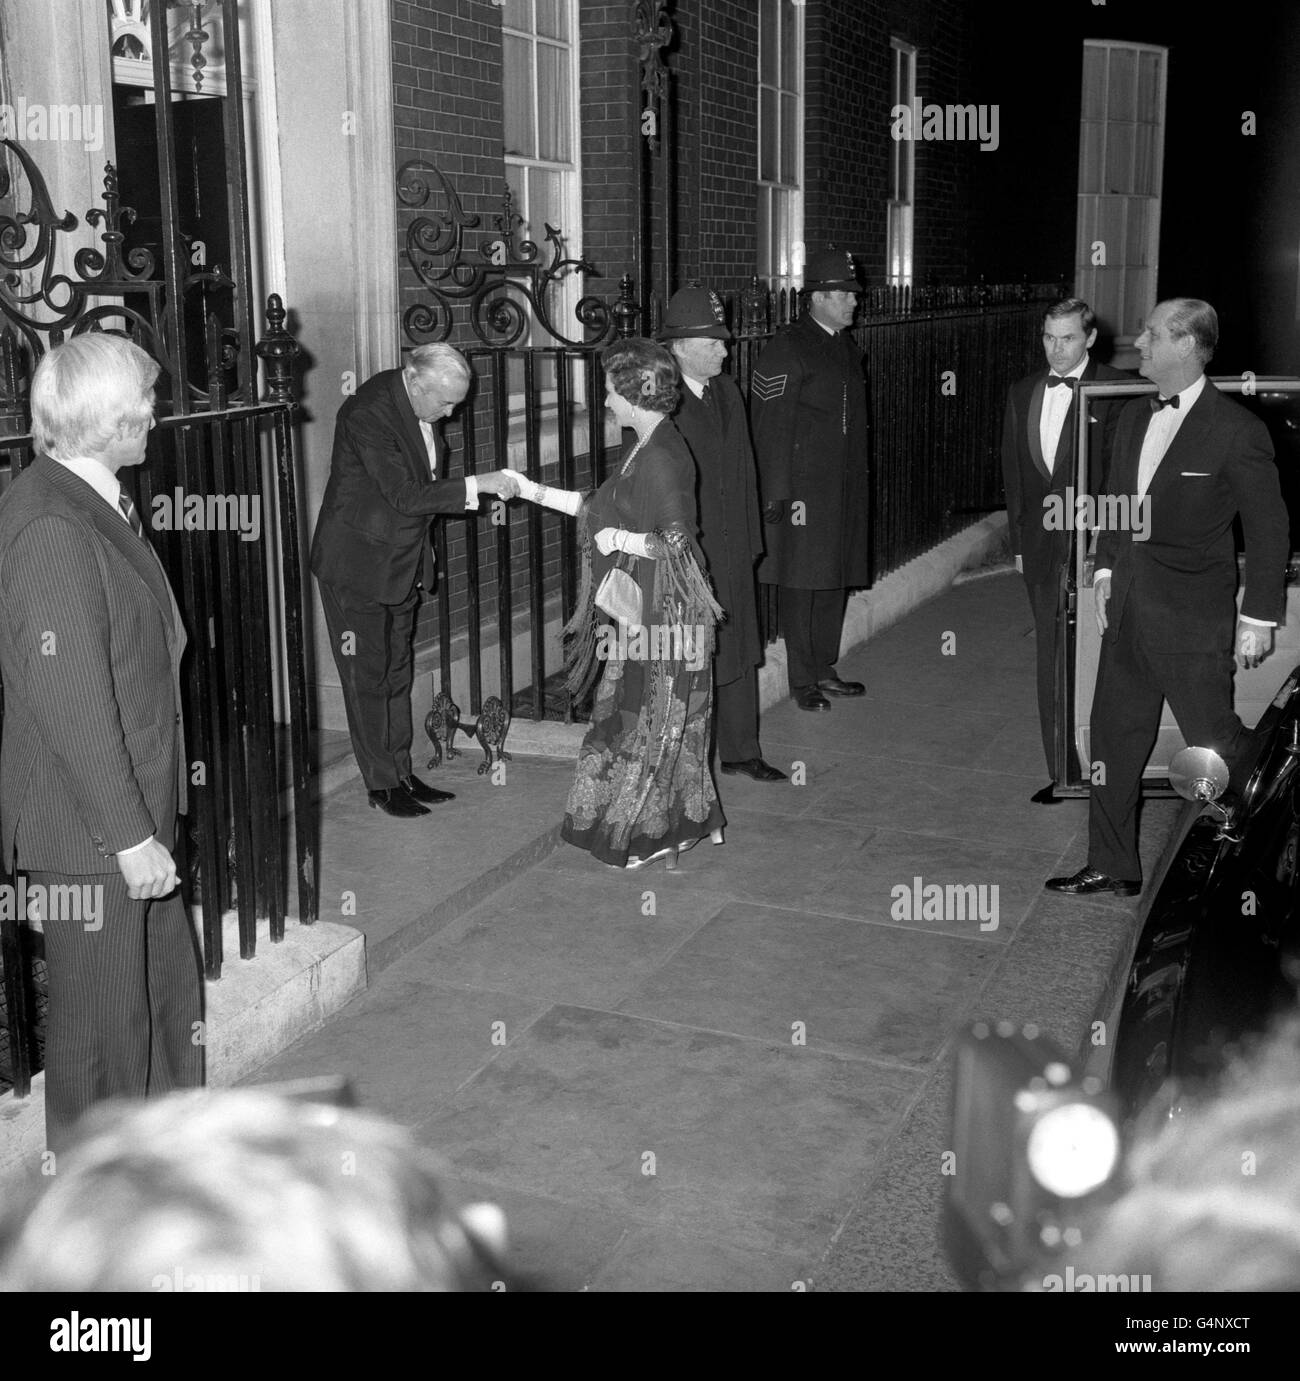 Royalty - Queen at 10 Downing Street - London - Stock Image